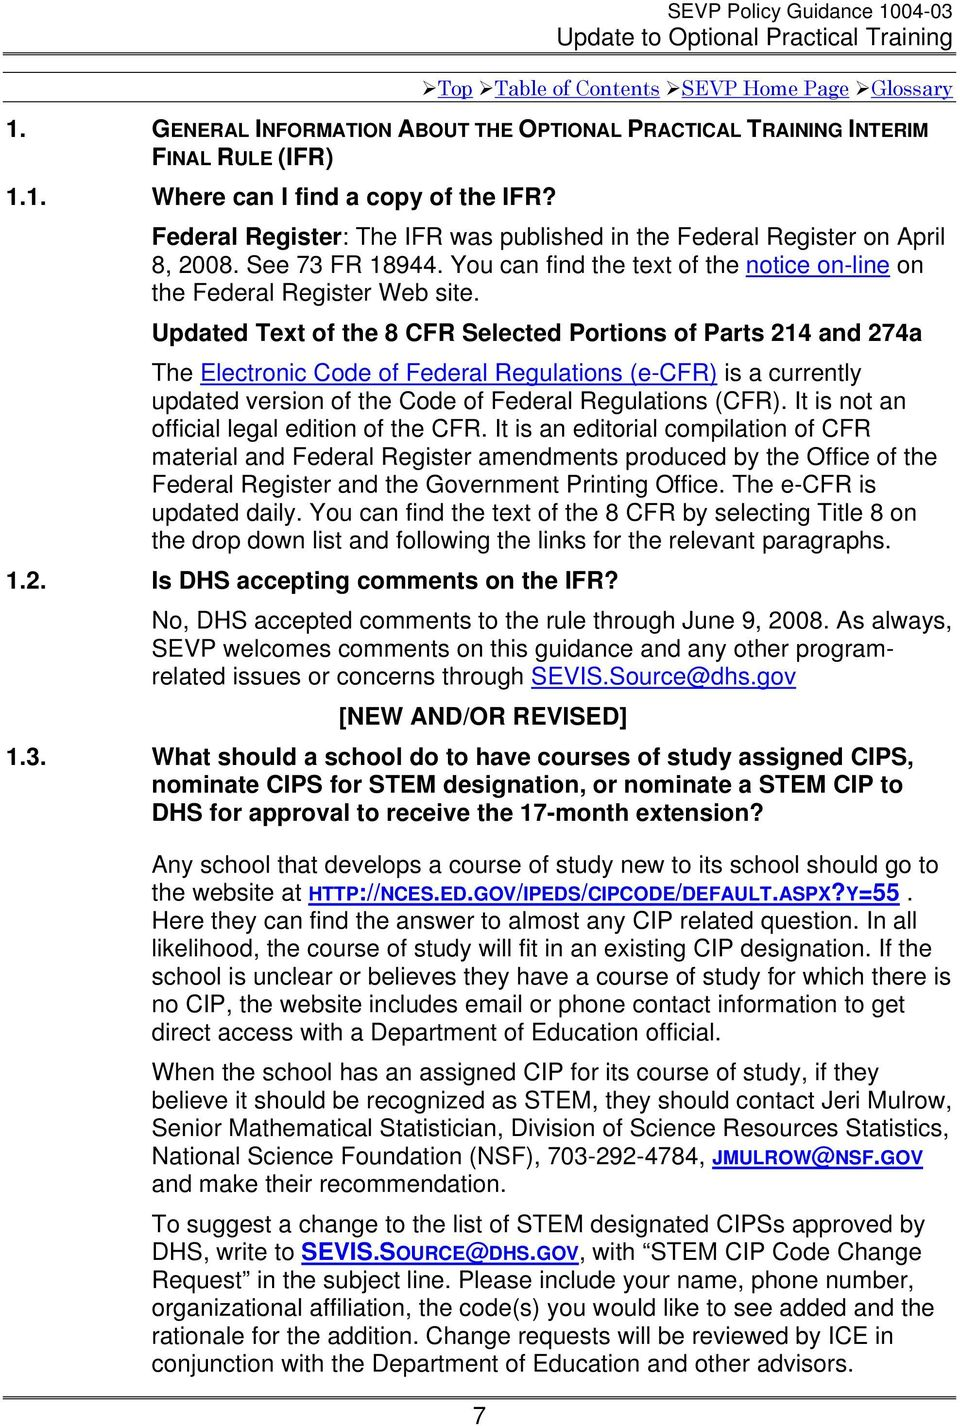 Updated Text of the 8 CFR Selected Portions of Parts 214 and 274a The Electronic Code of Federal Regulations (e-cfr) is a currently updated version of the Code of Federal Regulations (CFR).